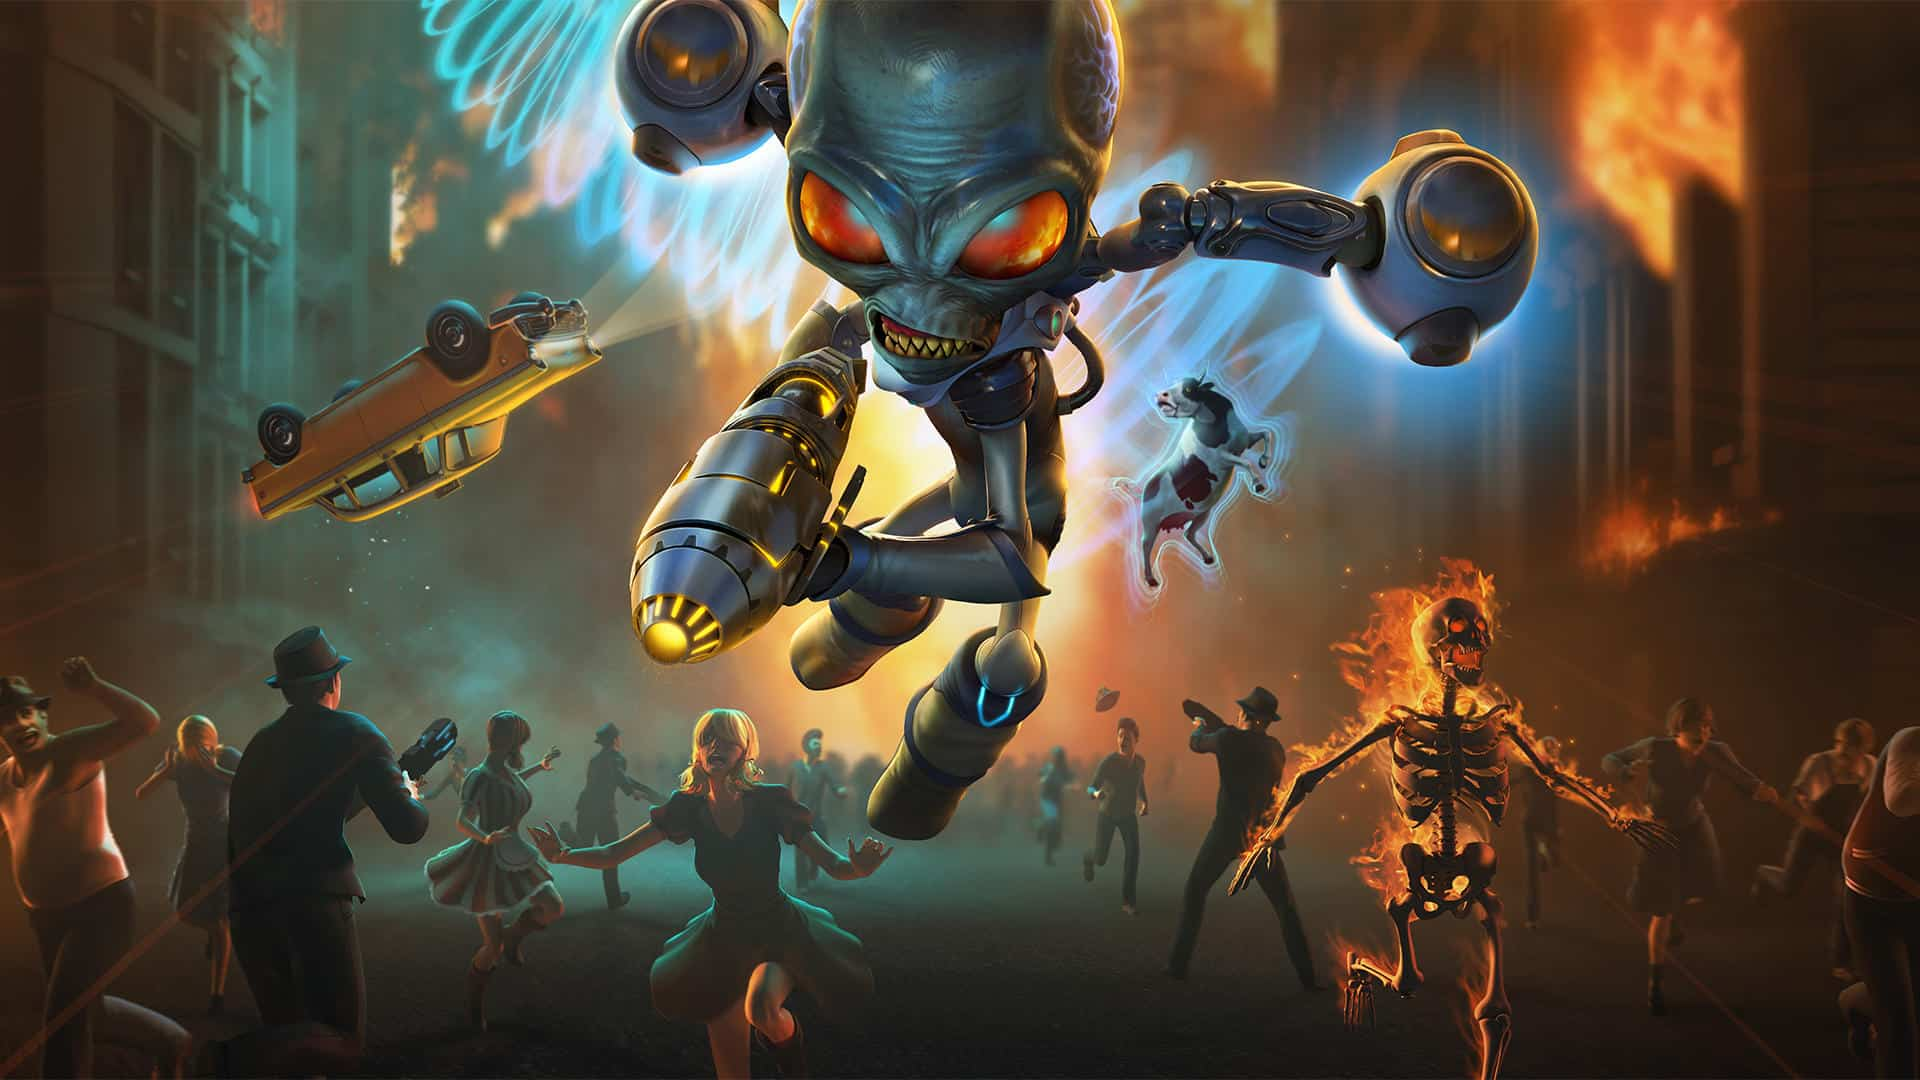 The Destroy All Humans! Remake Demo Xbox Game Pass April